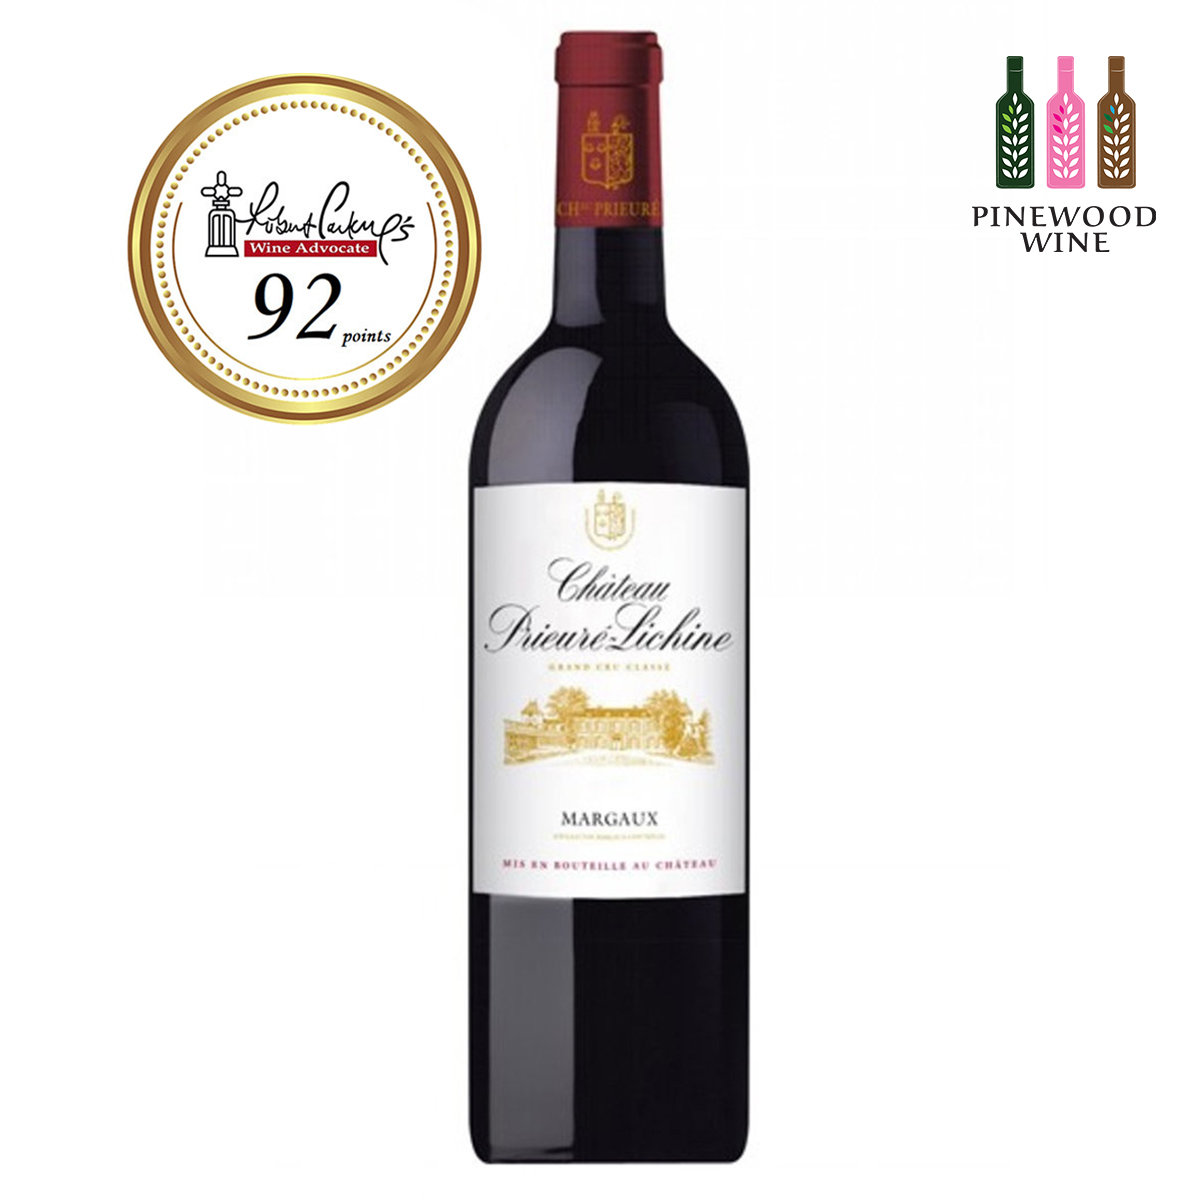 Margaux 2005, RP 92